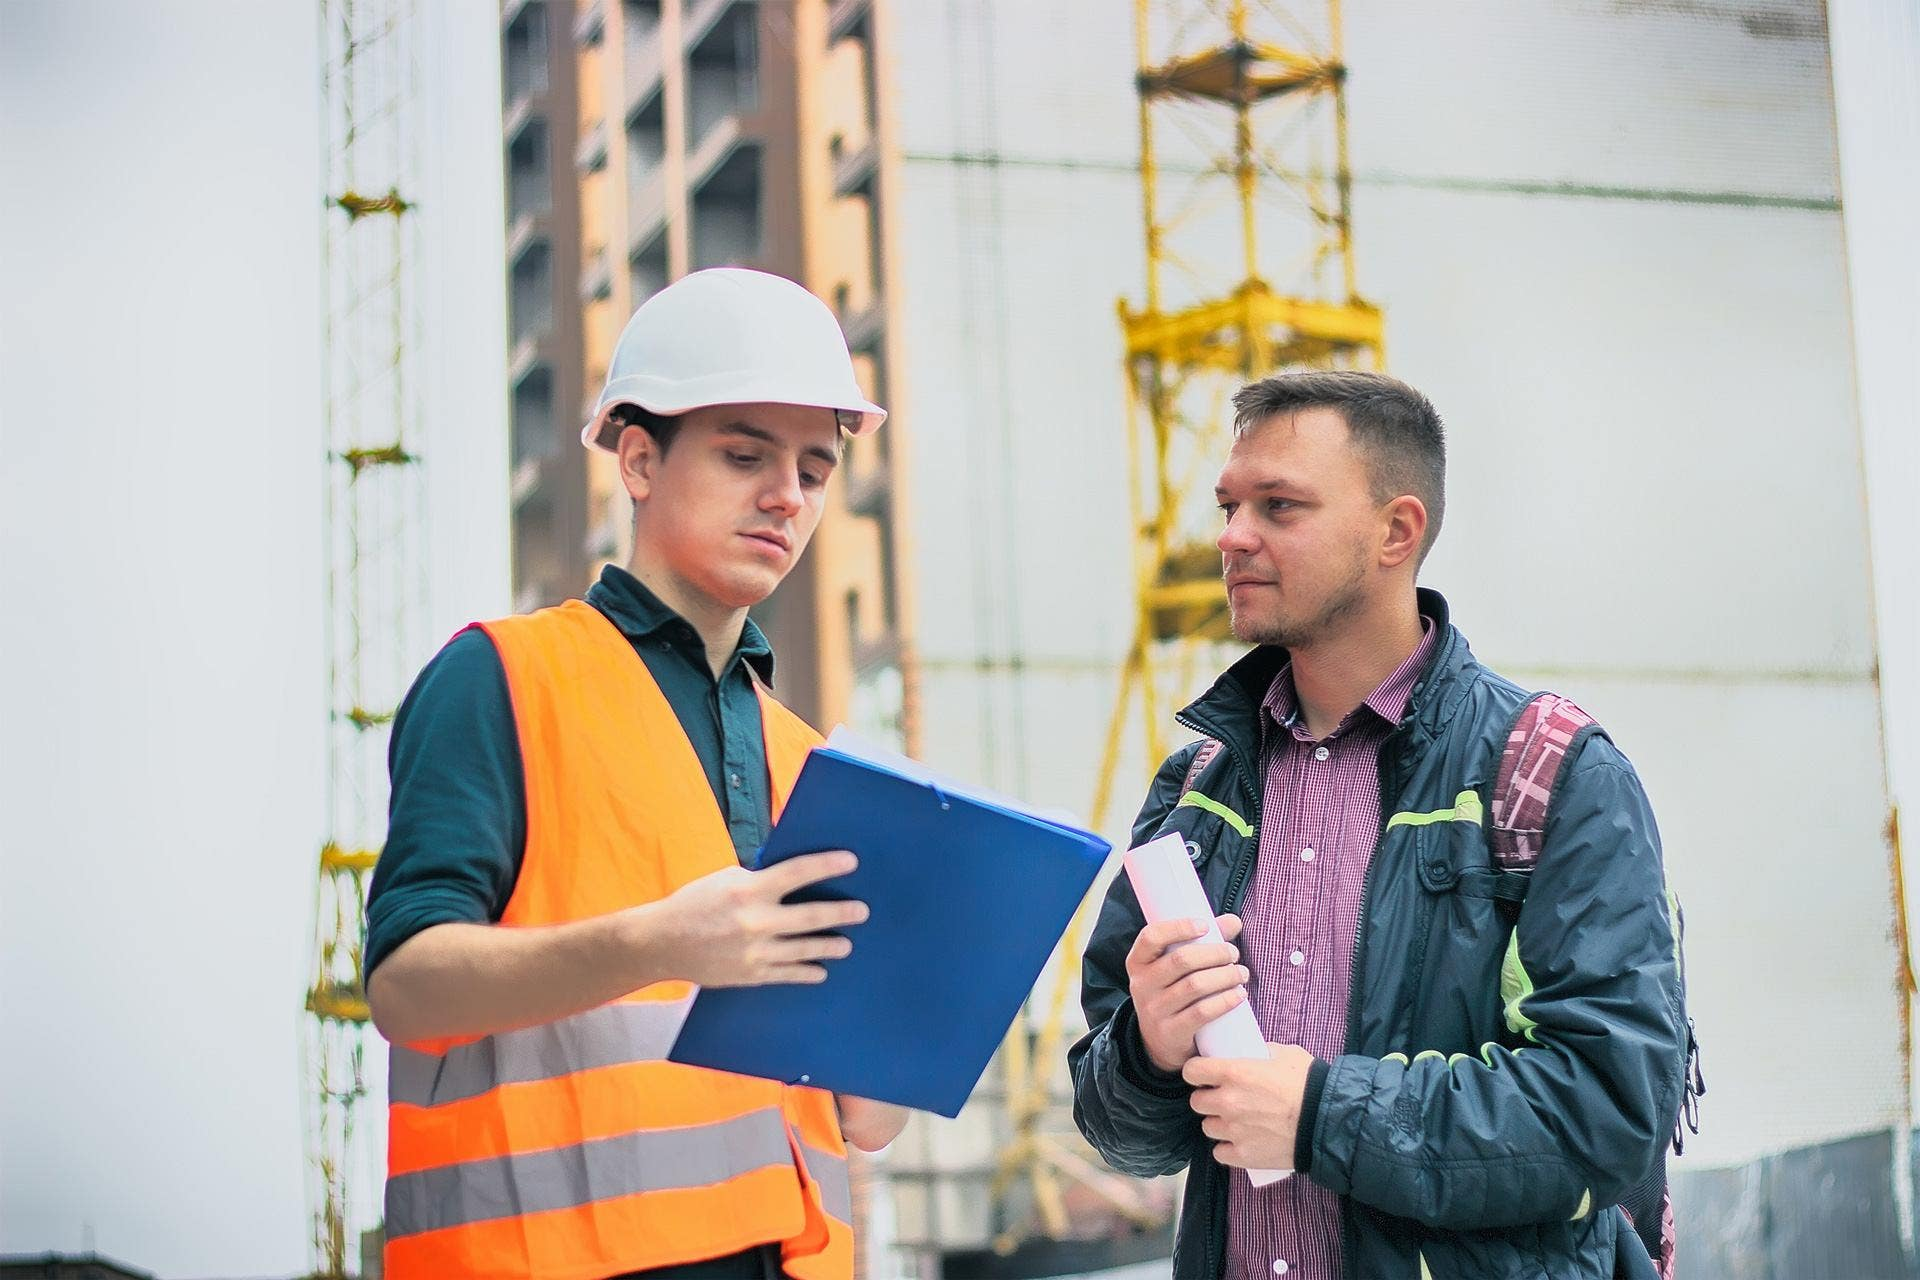 How to Become a Health and Safety Advisor